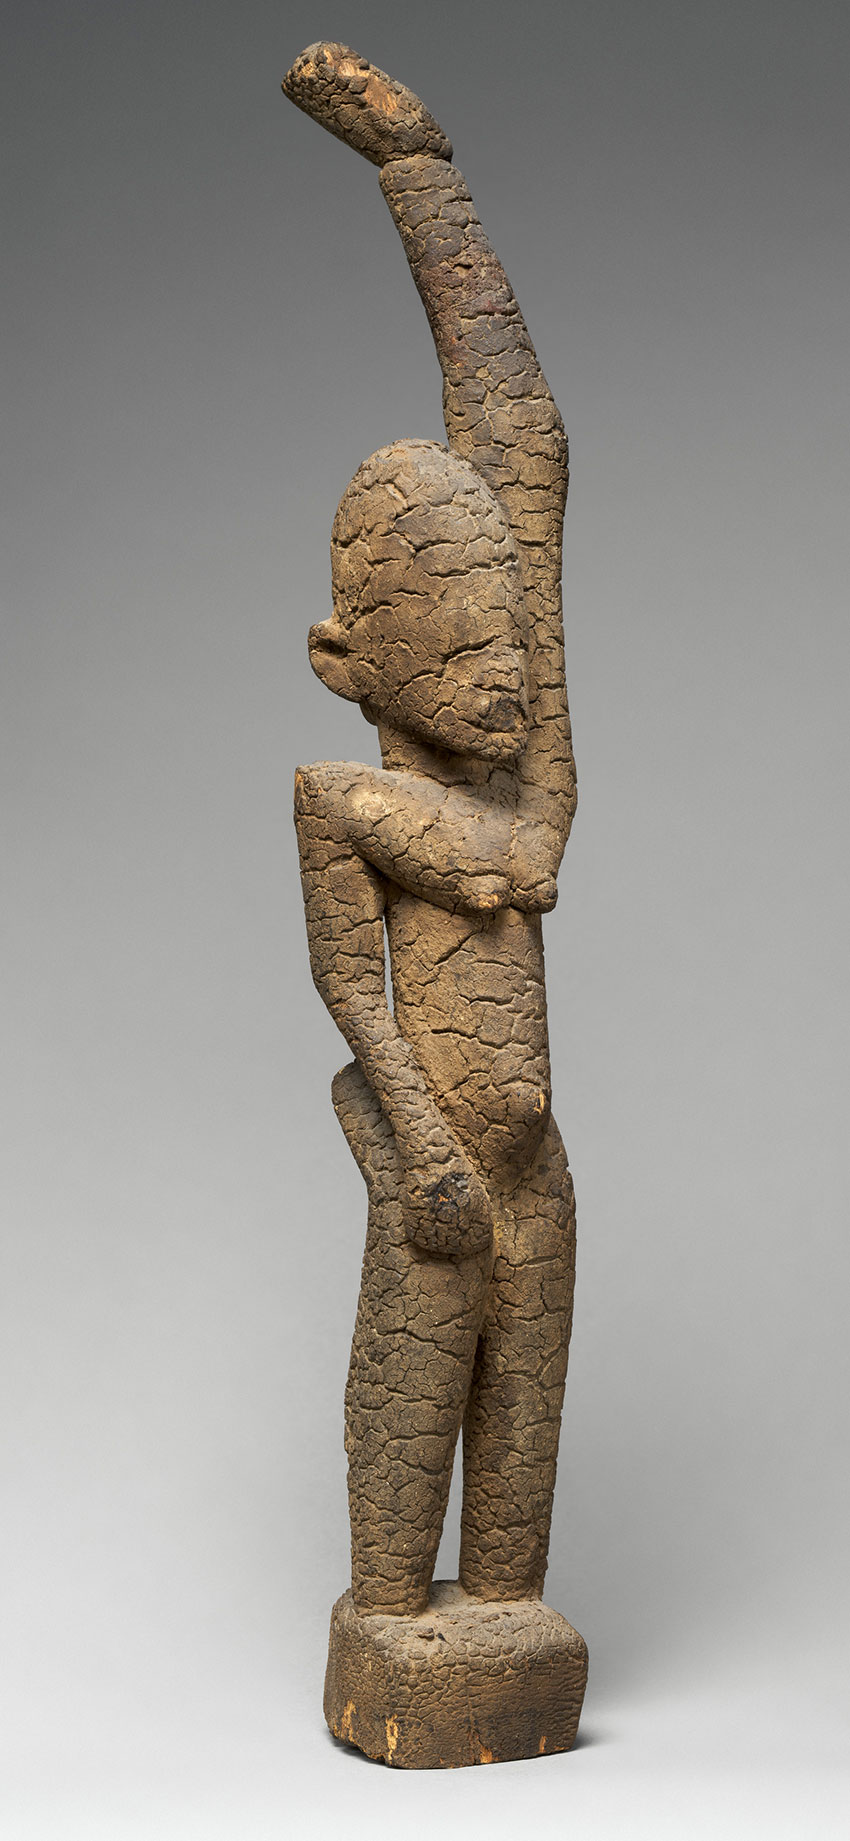 Female-Figure-with-Raised-Arm.-Mali-Ireli_-Tellem-civilization_15th–17th-century-Wood_African-Art.j